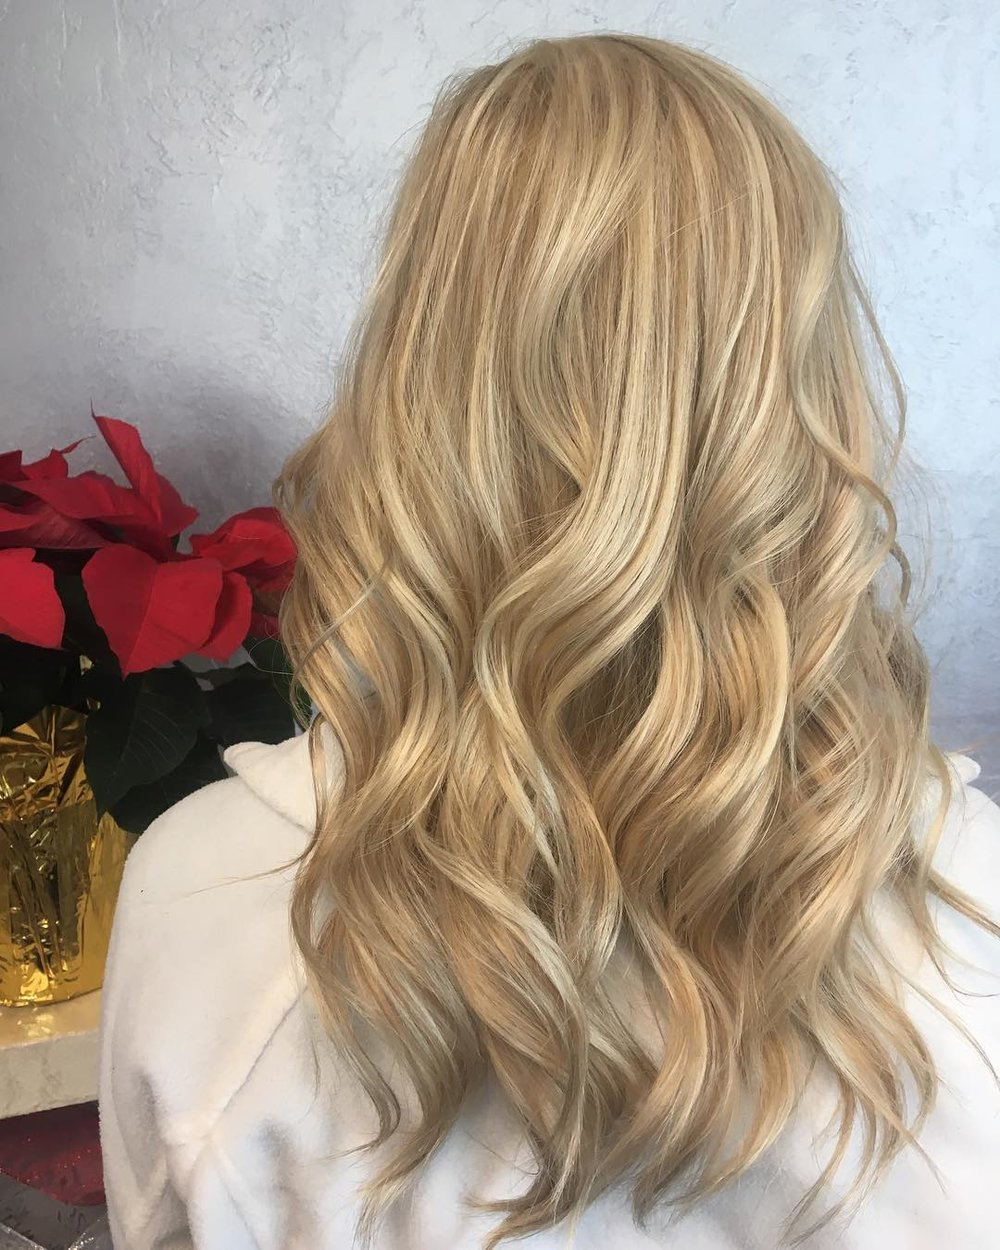 best-hair-styles-oklahoma-city (1).jpg